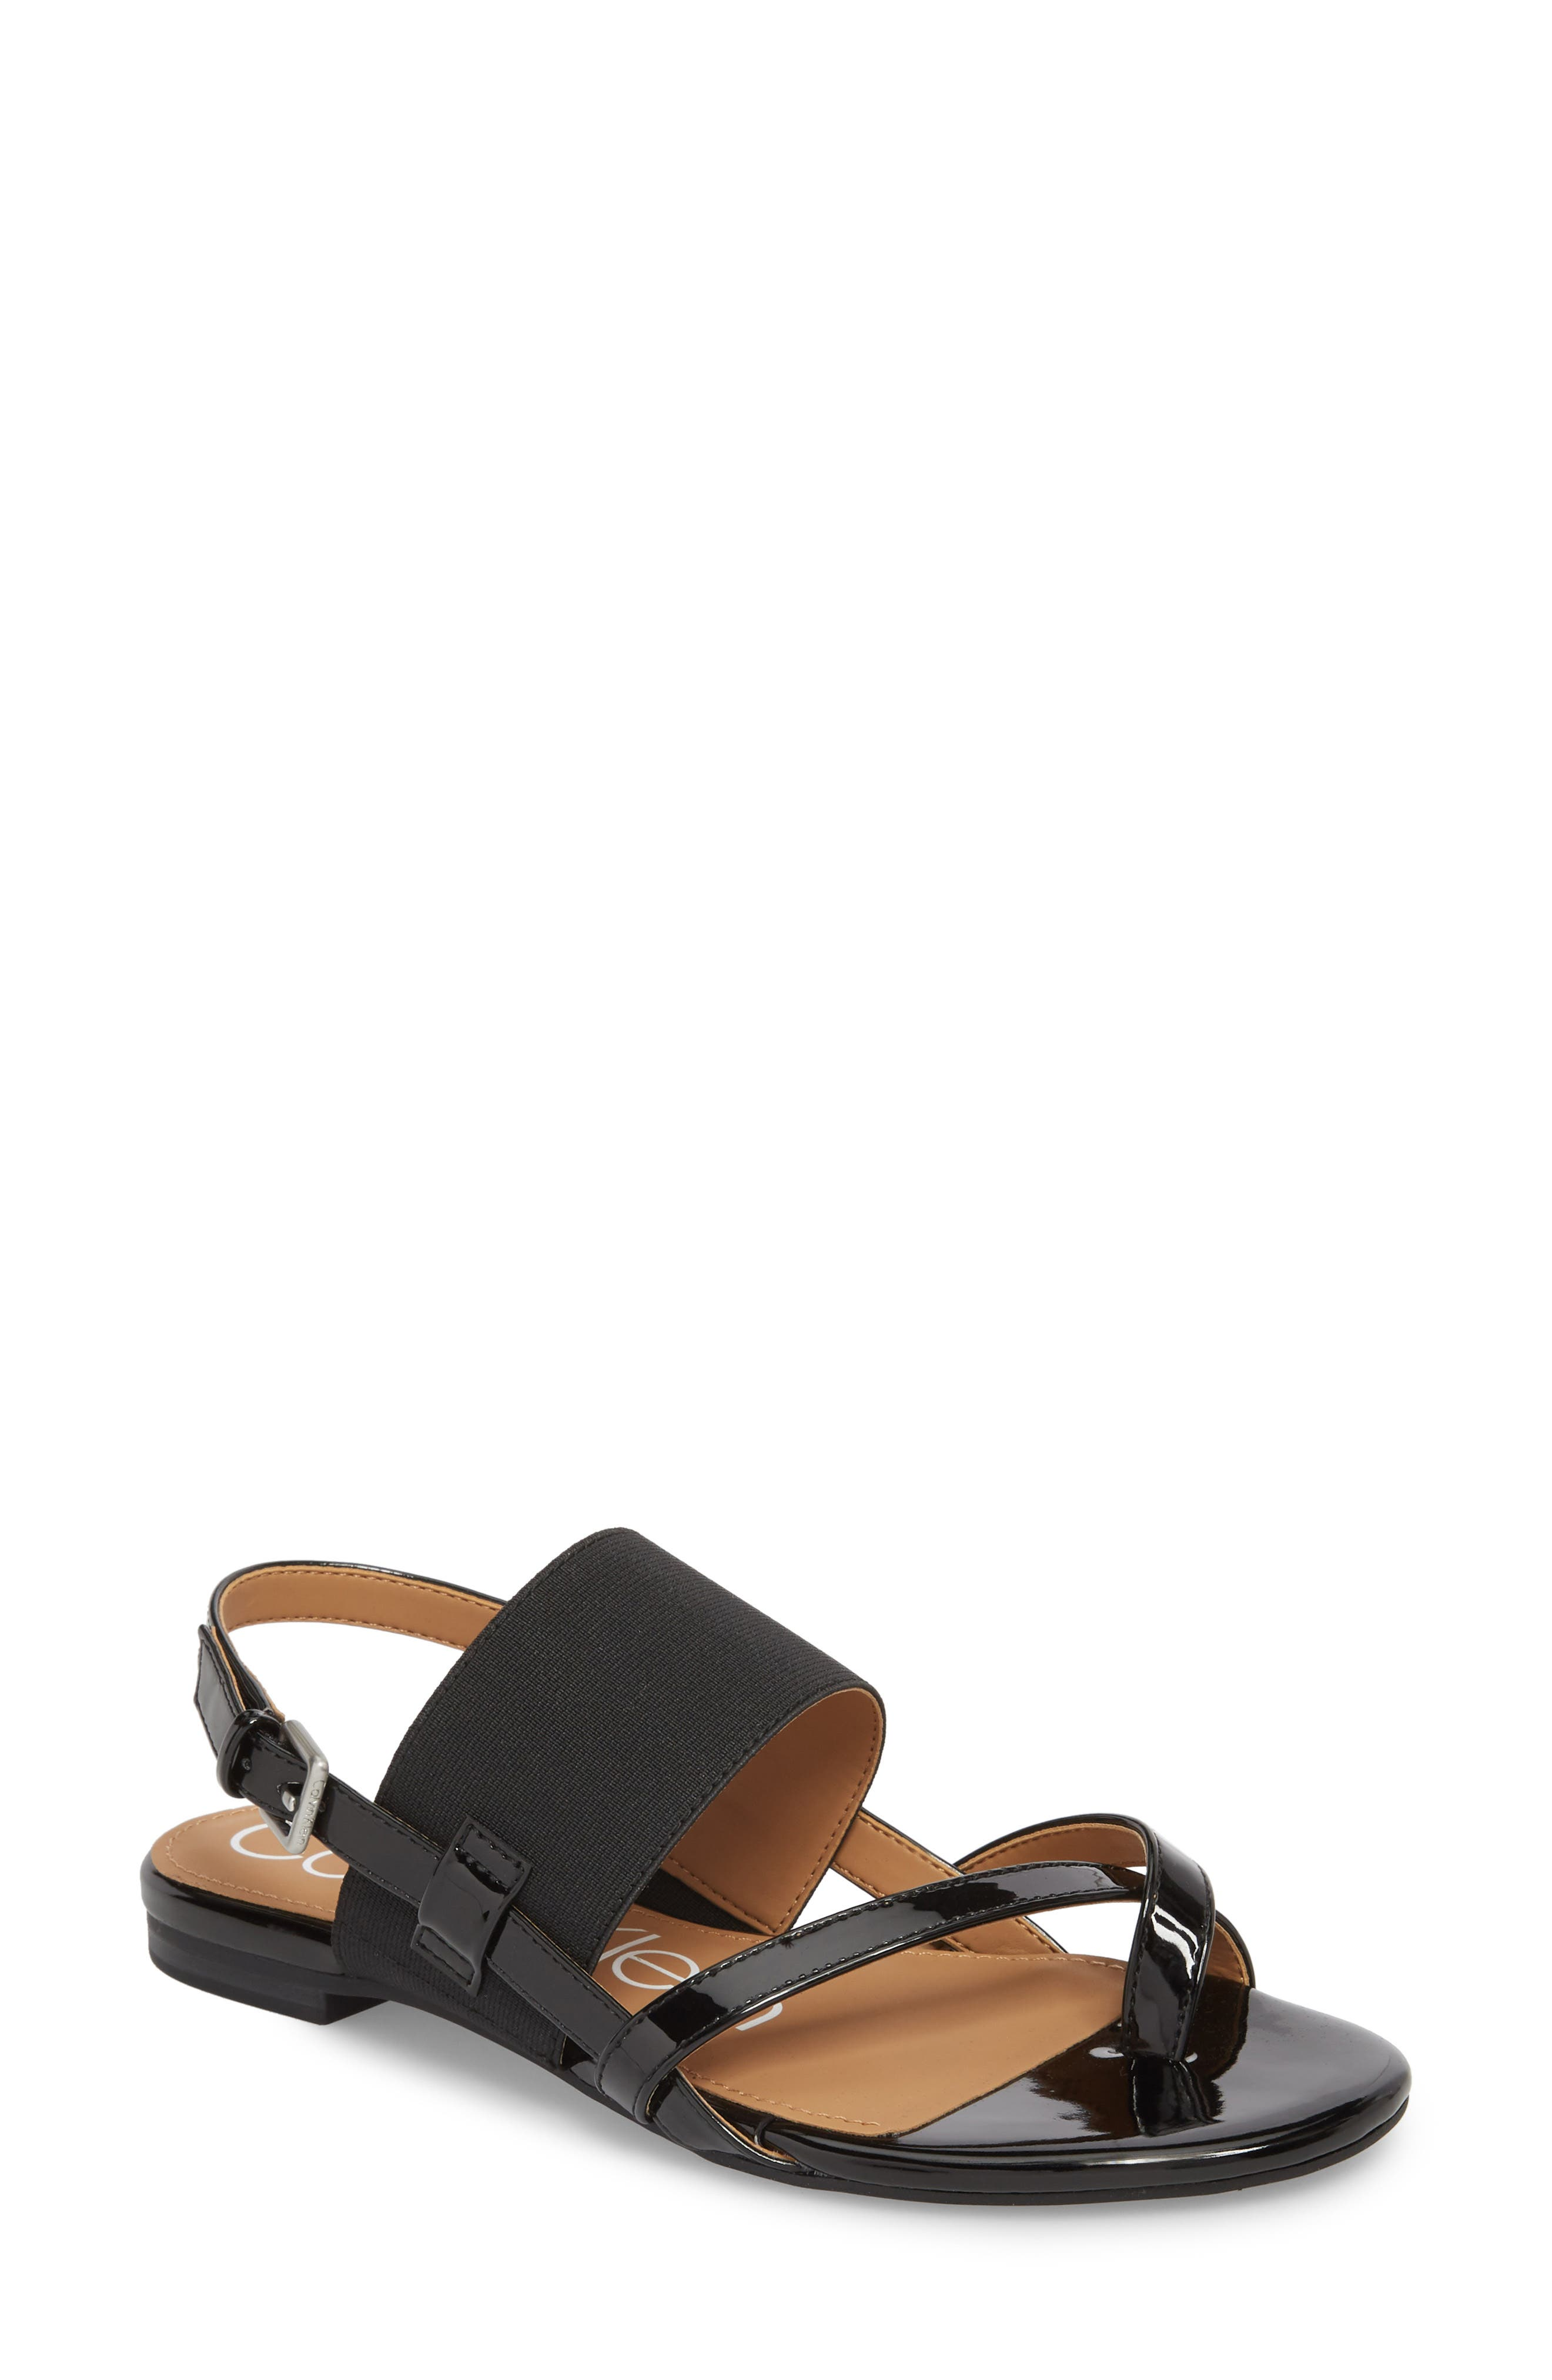 CALVIN KLEIN, Berry Sandal, Main thumbnail 1, color, 001